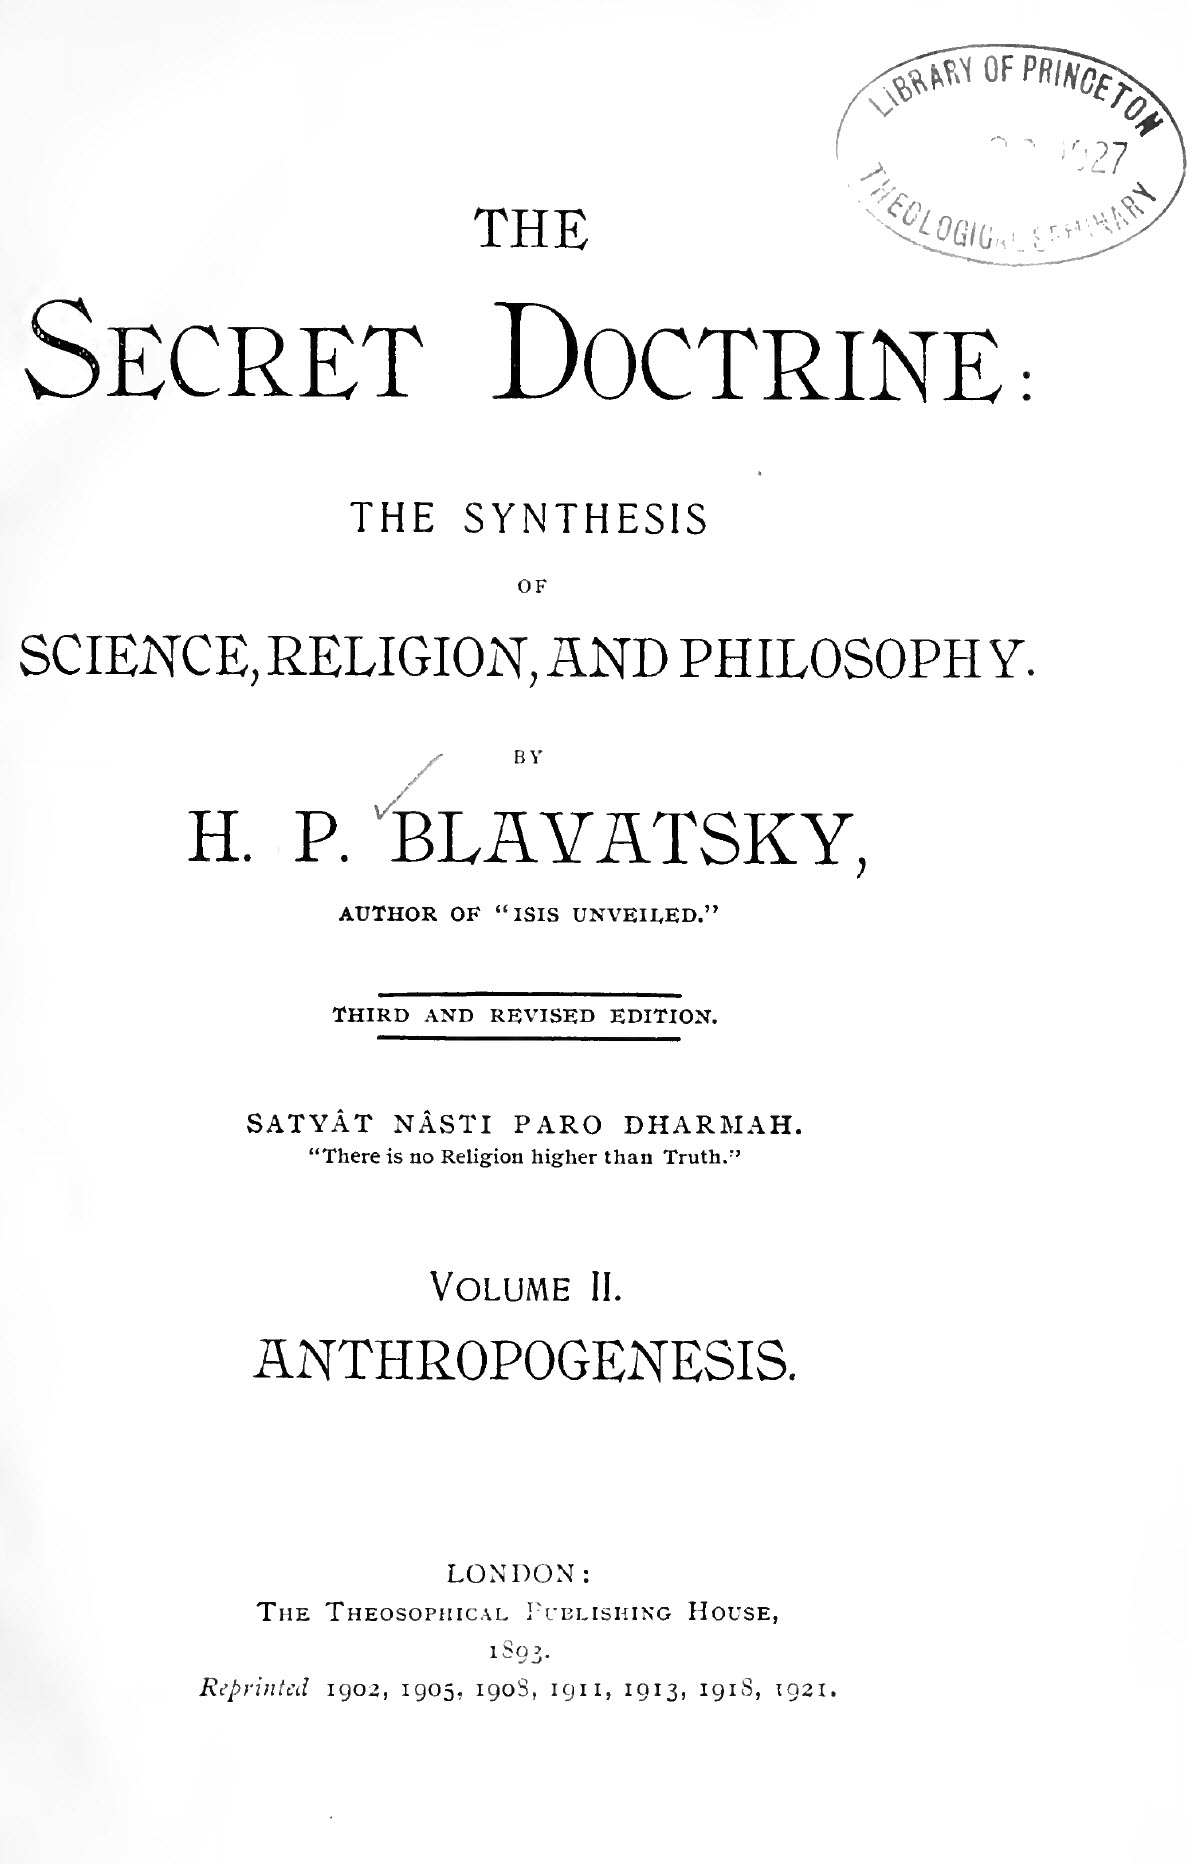 Blavatsky, Secret Doctrine Volume 2, Anthropogenesis, 3rd Edition, PDF